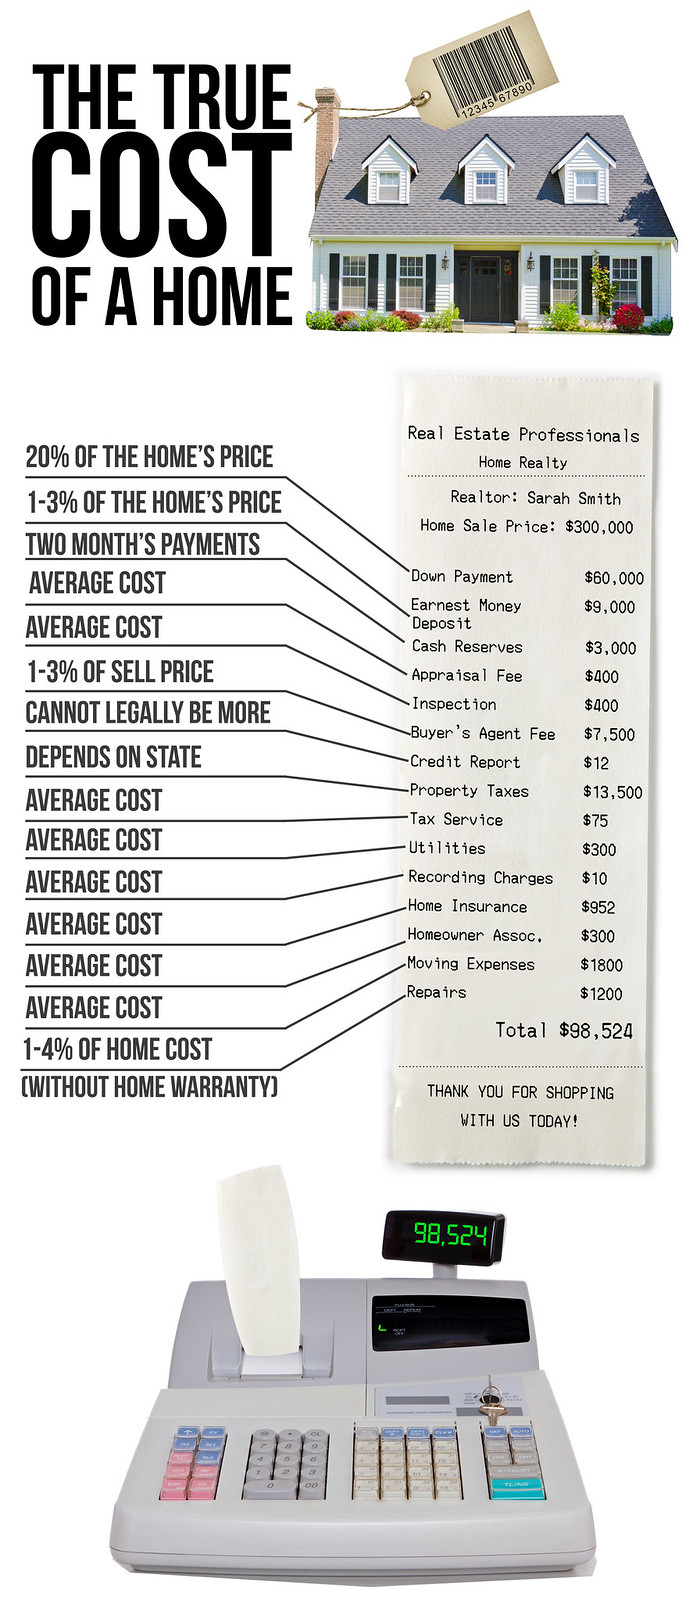 The True Cost Of A Home